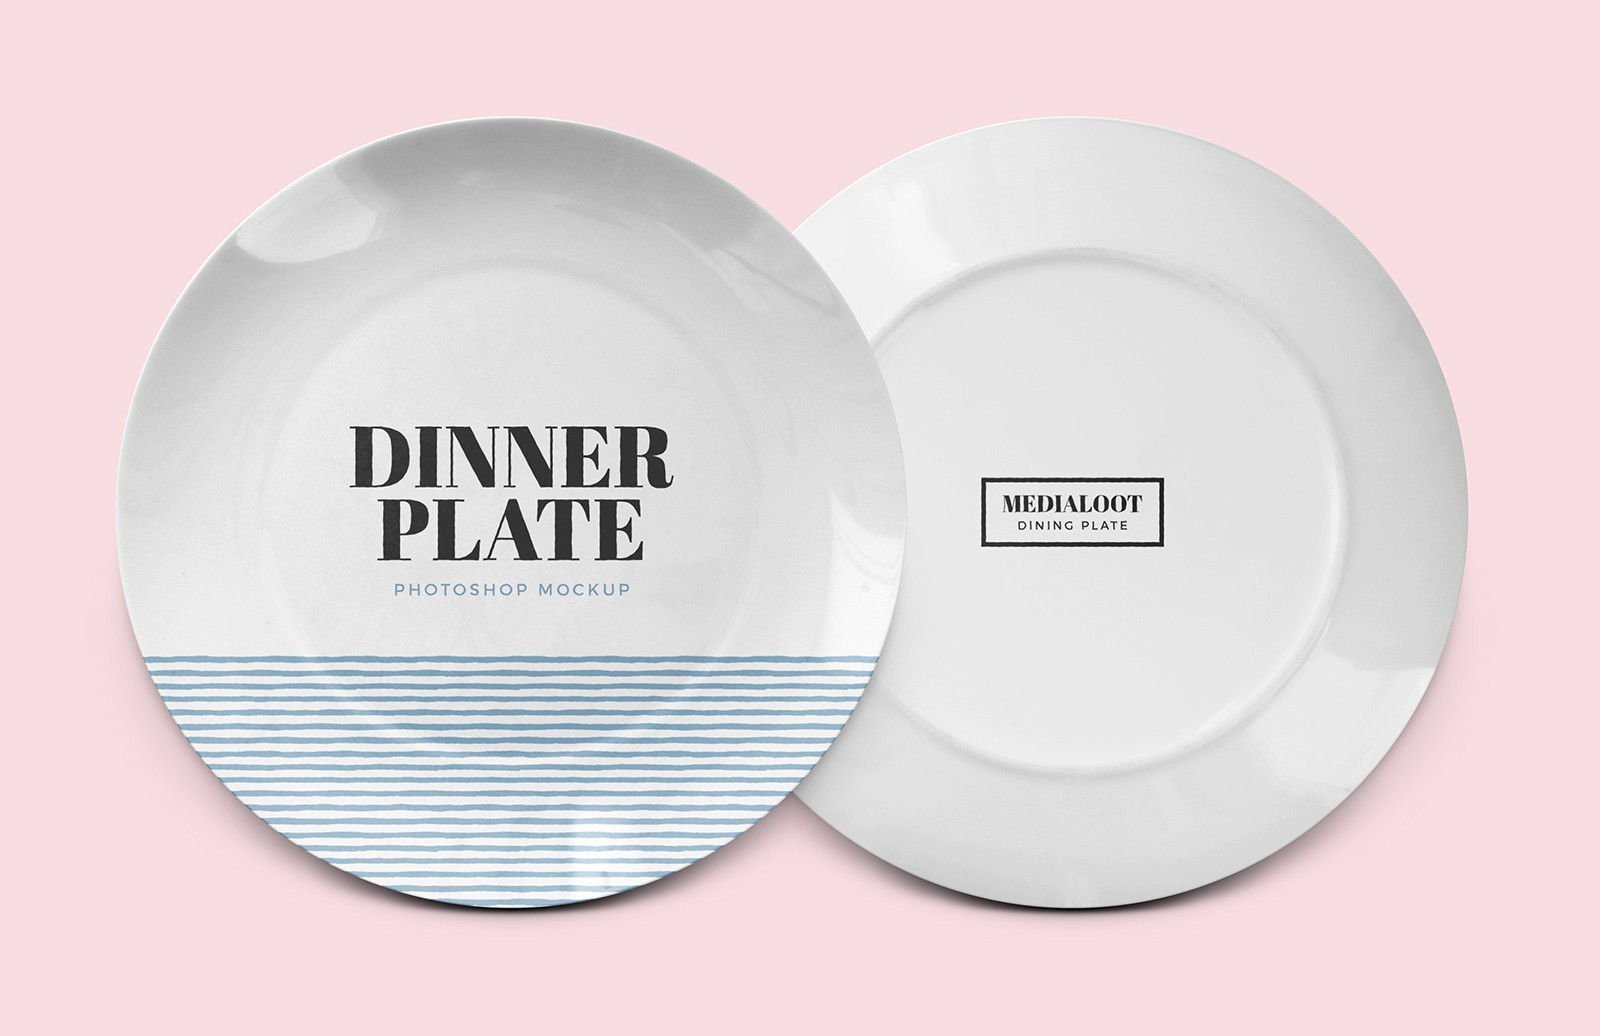 Dinner Plate Mockup for Photoshop